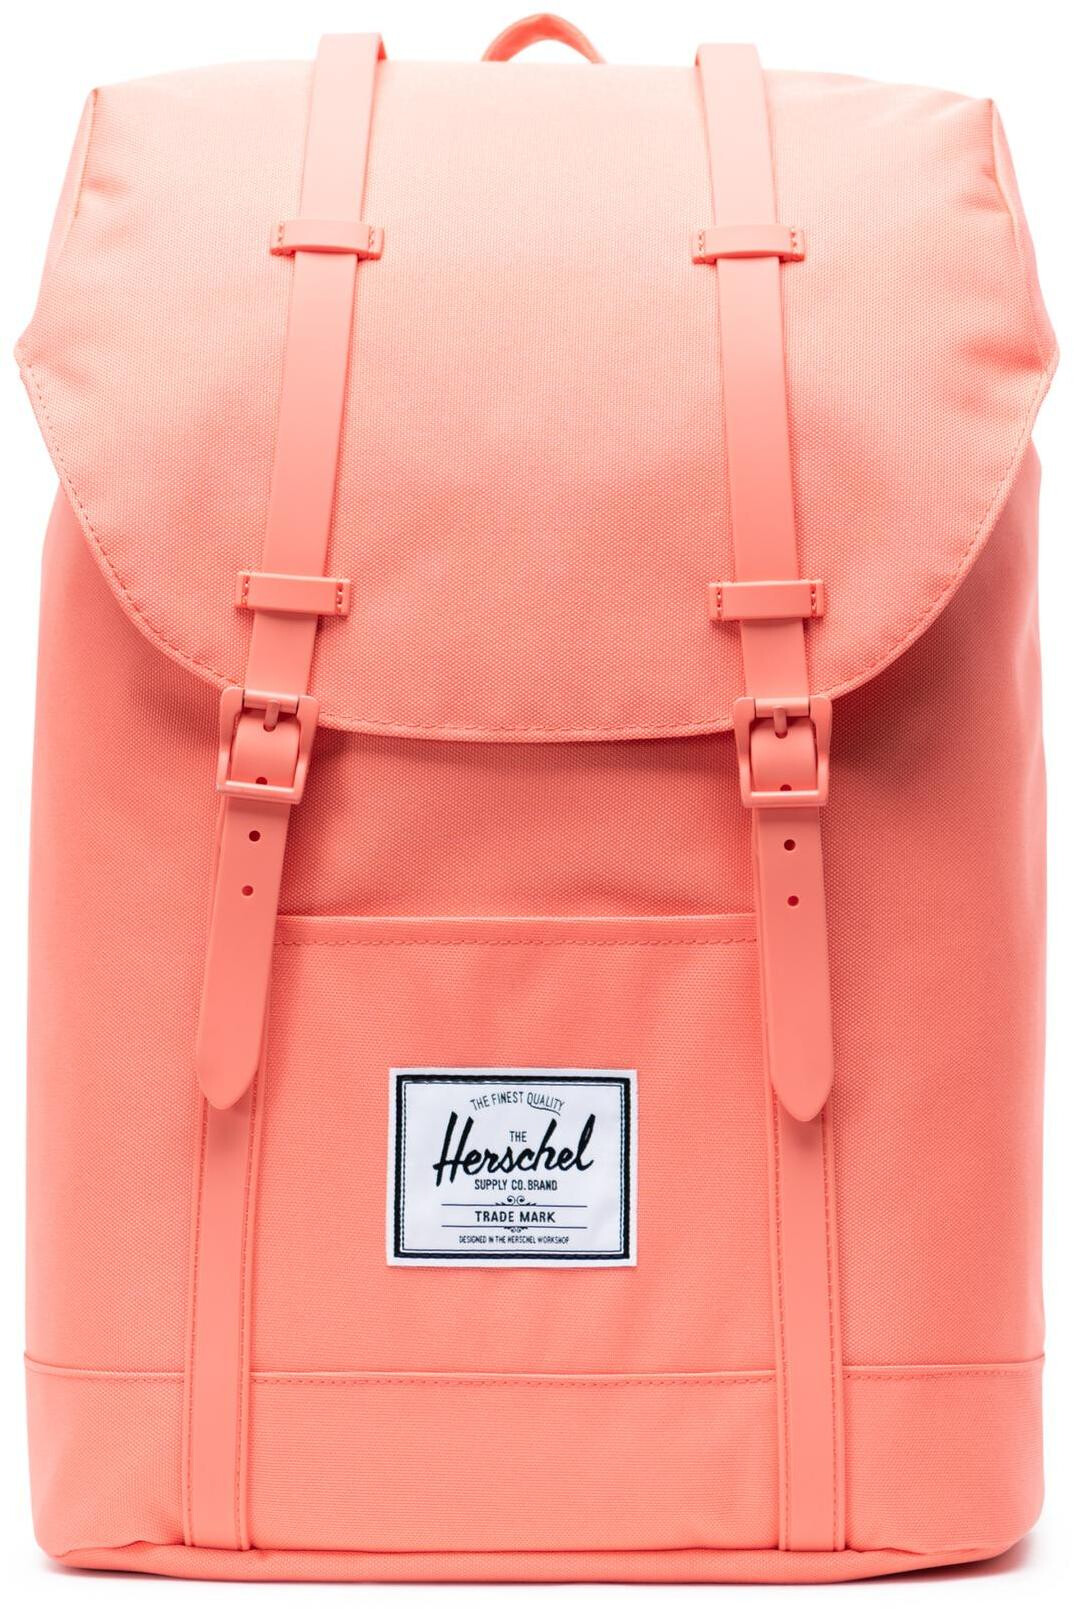 Herschel Retreat Rygsæk 19,5l, fresh salmon (2019) | Travel bags